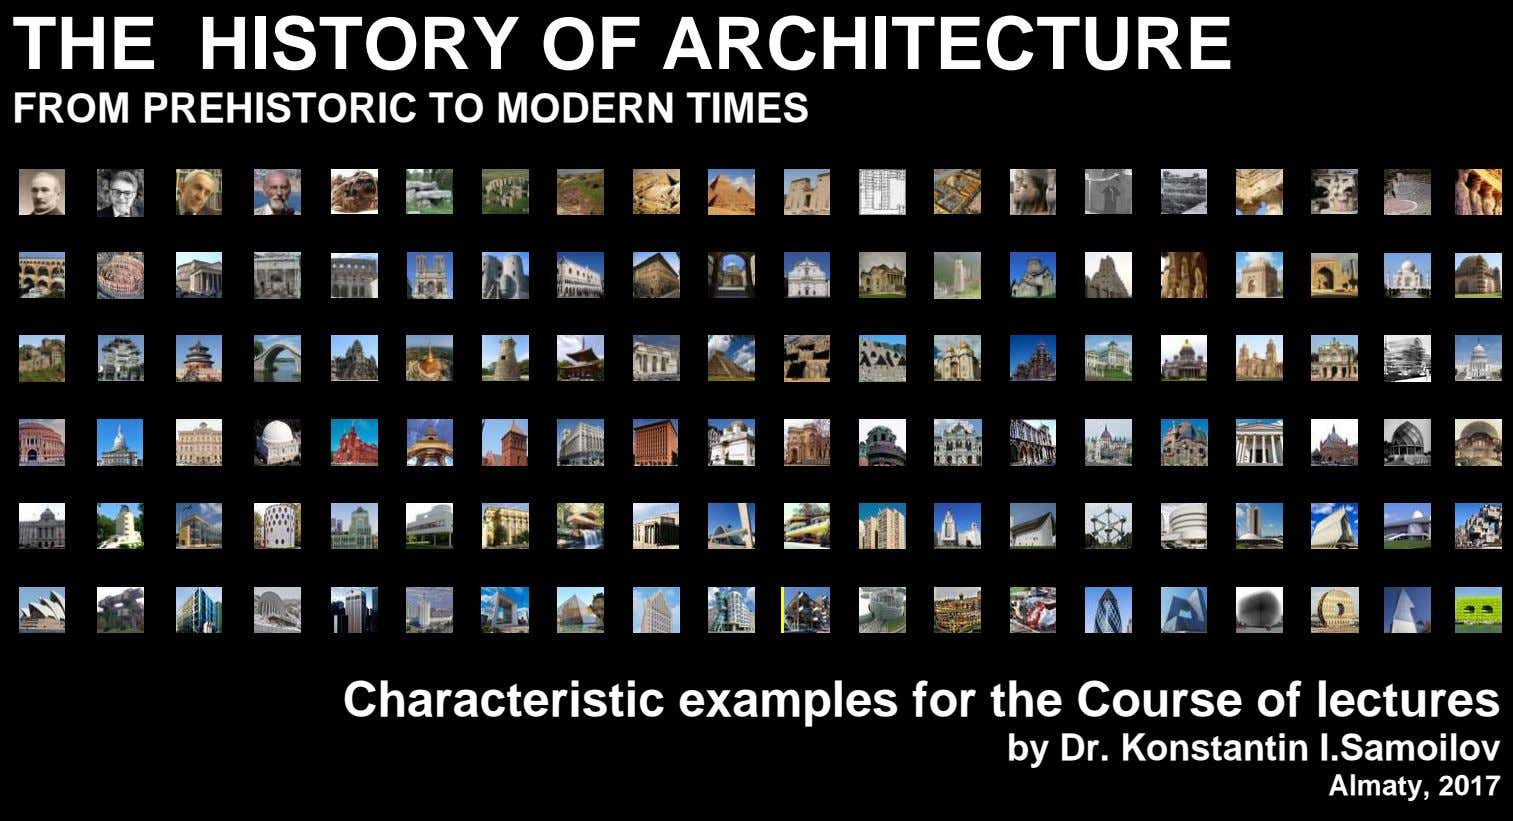 THE HISTORY OF ARCHITECTURE FROM PREHISTORIC TO MODERN TIMES Characteristic examples for the Course of